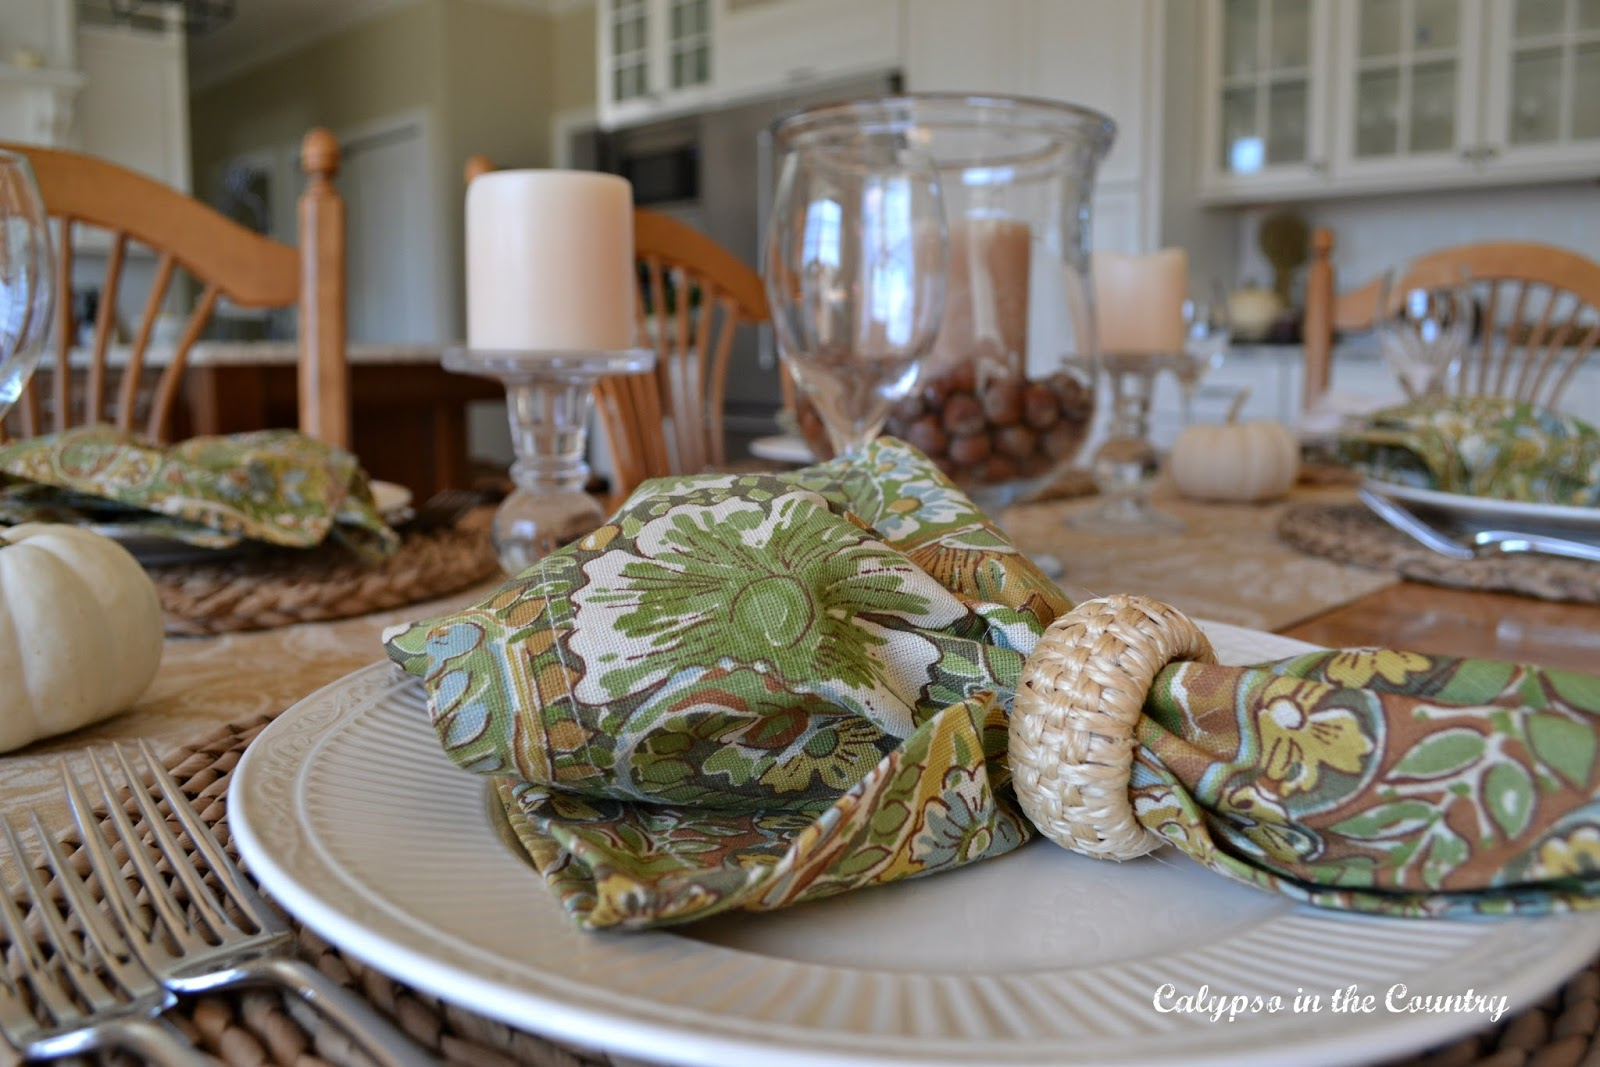 Autumn Table Setting with Green and Tan Napkins